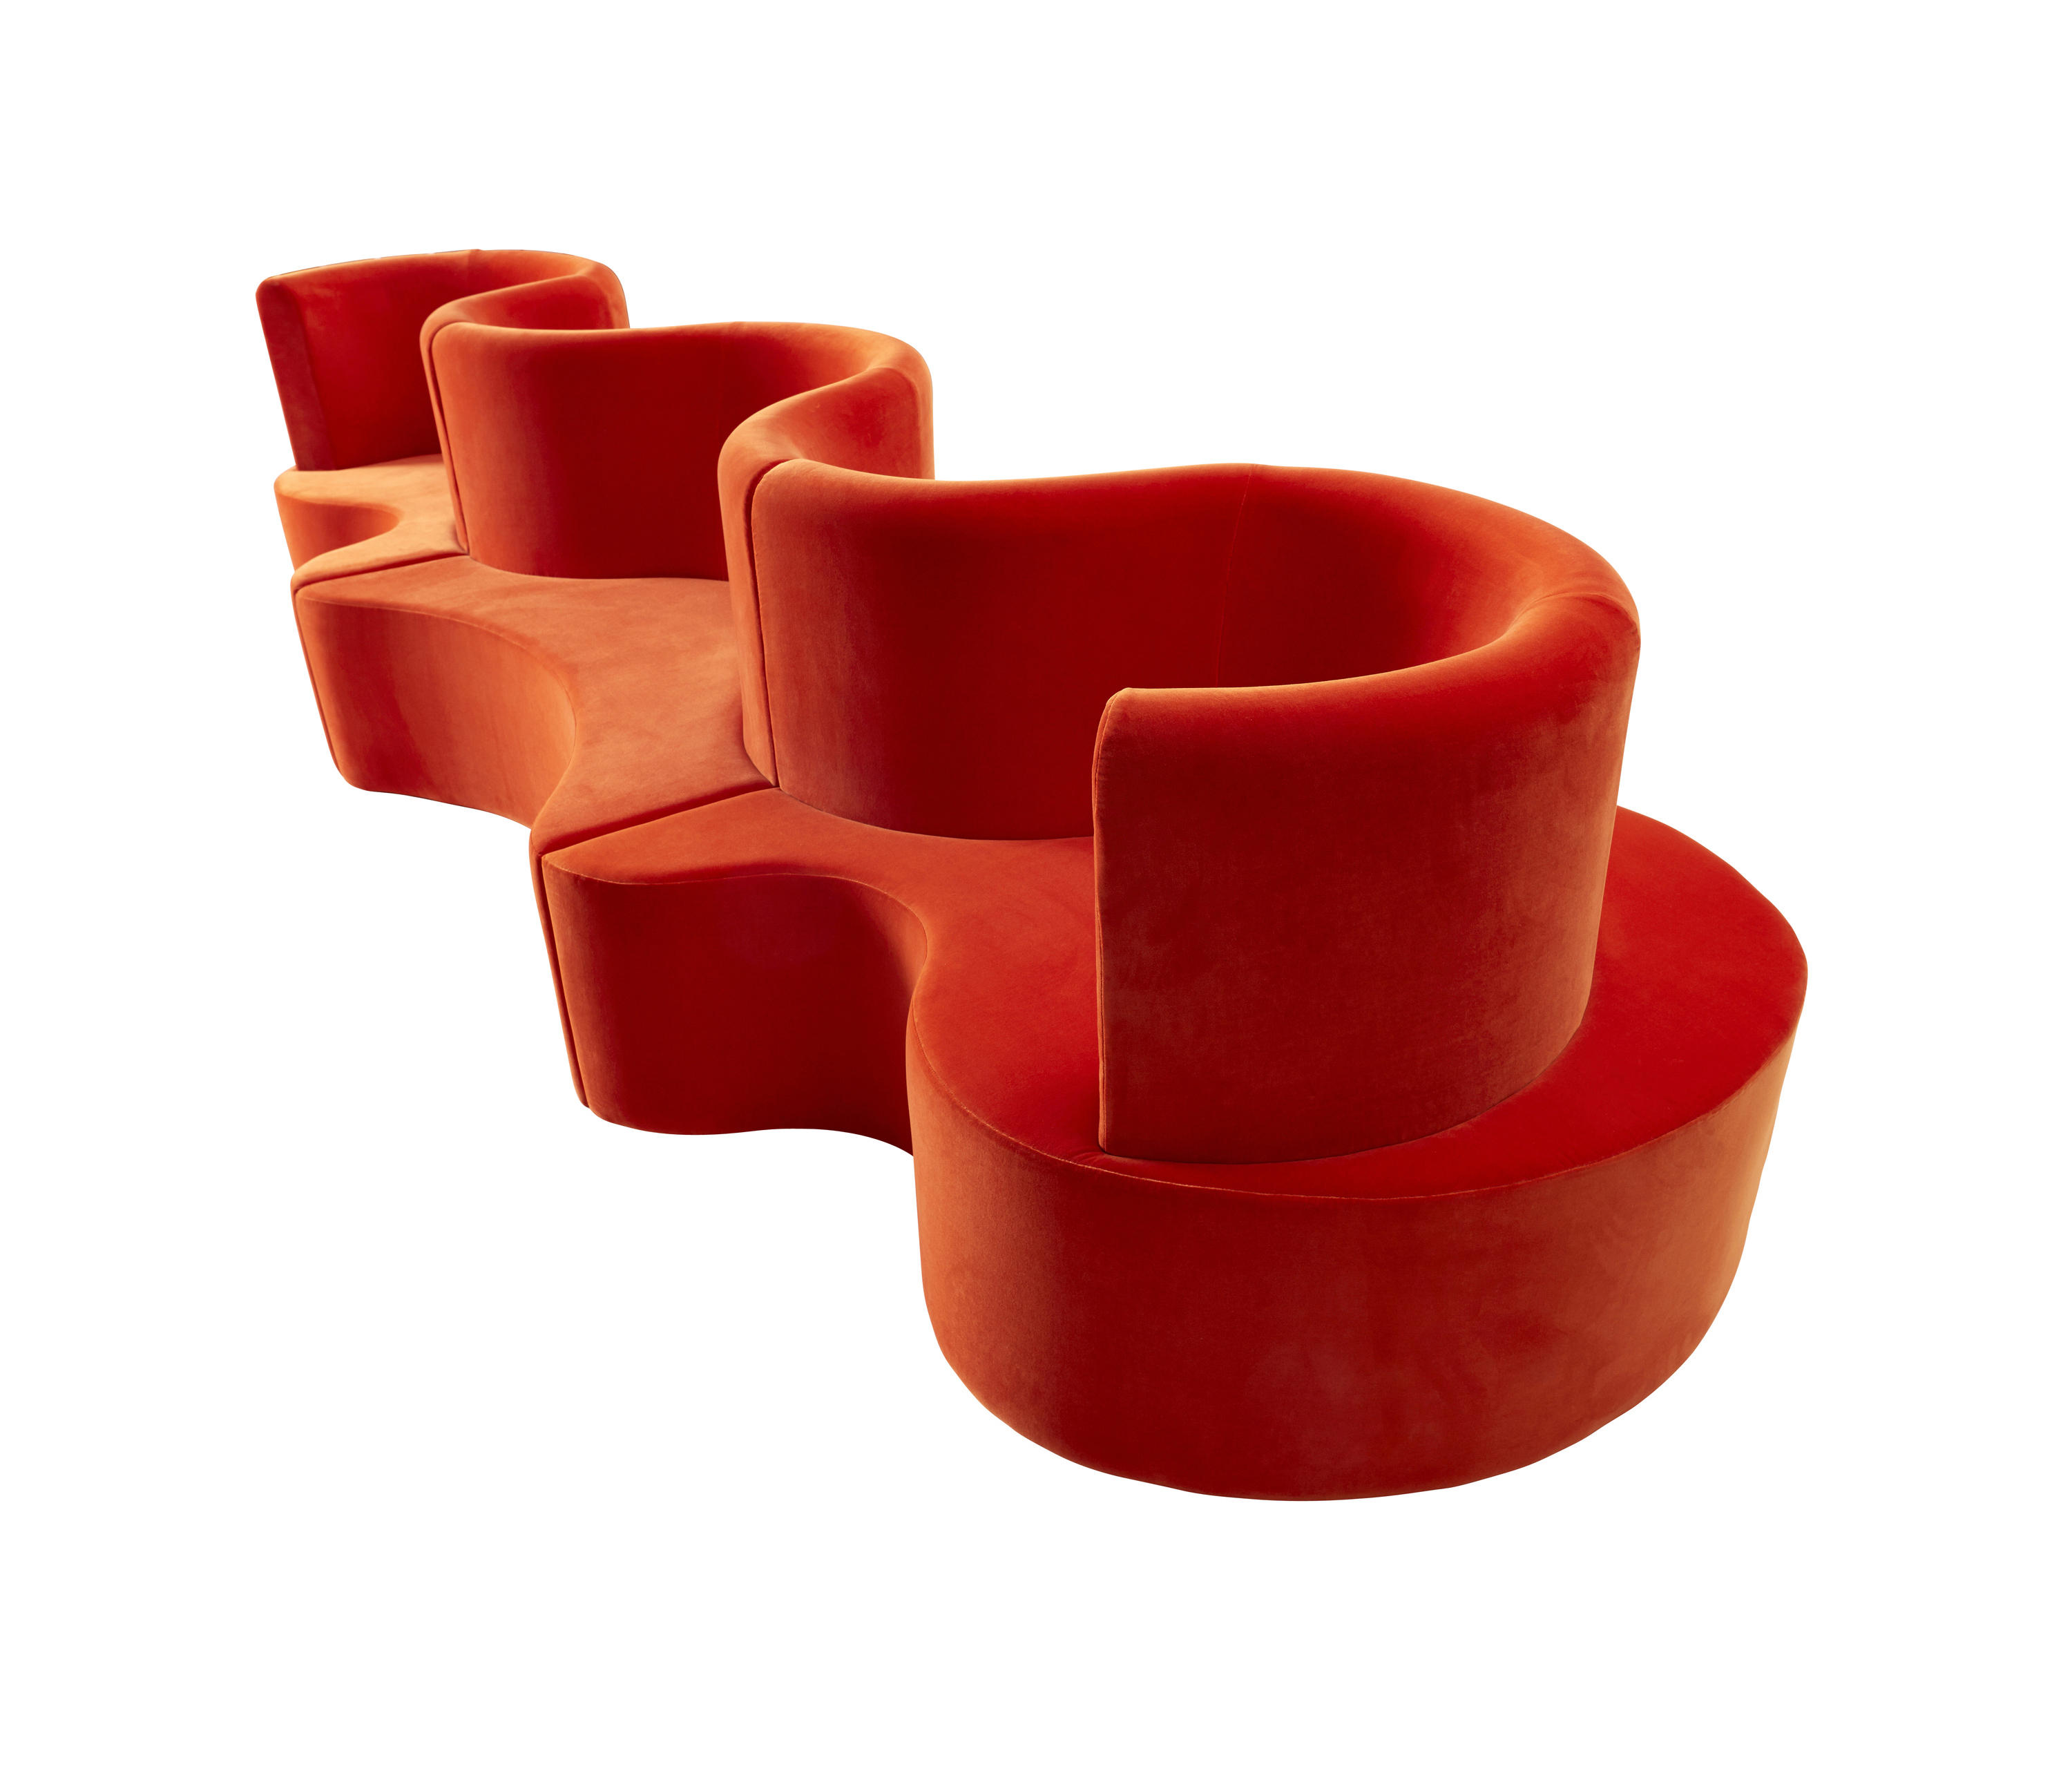 ... Cloverleaf | Sofa   With Ext. Unit By Verpan | Modular Seating Elements